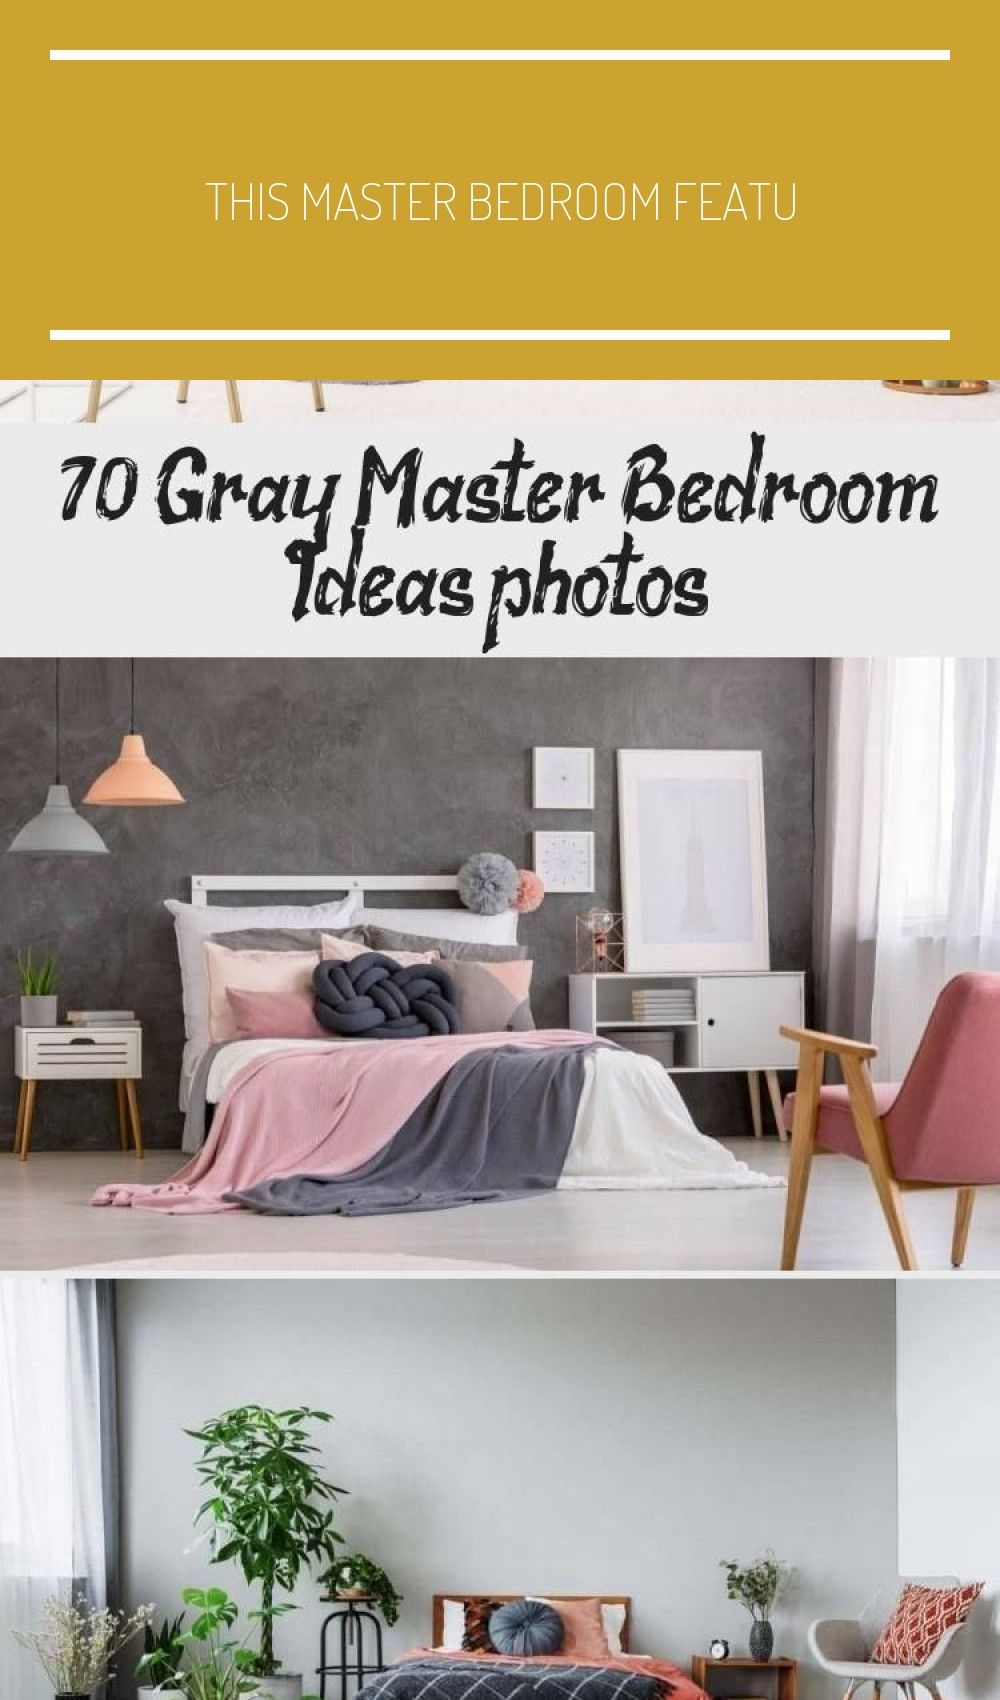 This master bedroom features light gray walls and carpet flooring topped by a rug. #Berbercarpet #carpetTypes #carpetMaterial #Redcarpet #Shawcarpet #master bedroom rug #Berber carpet bedroom grey #gray Berber carpet bedroom #gray Berber carpet bedroom